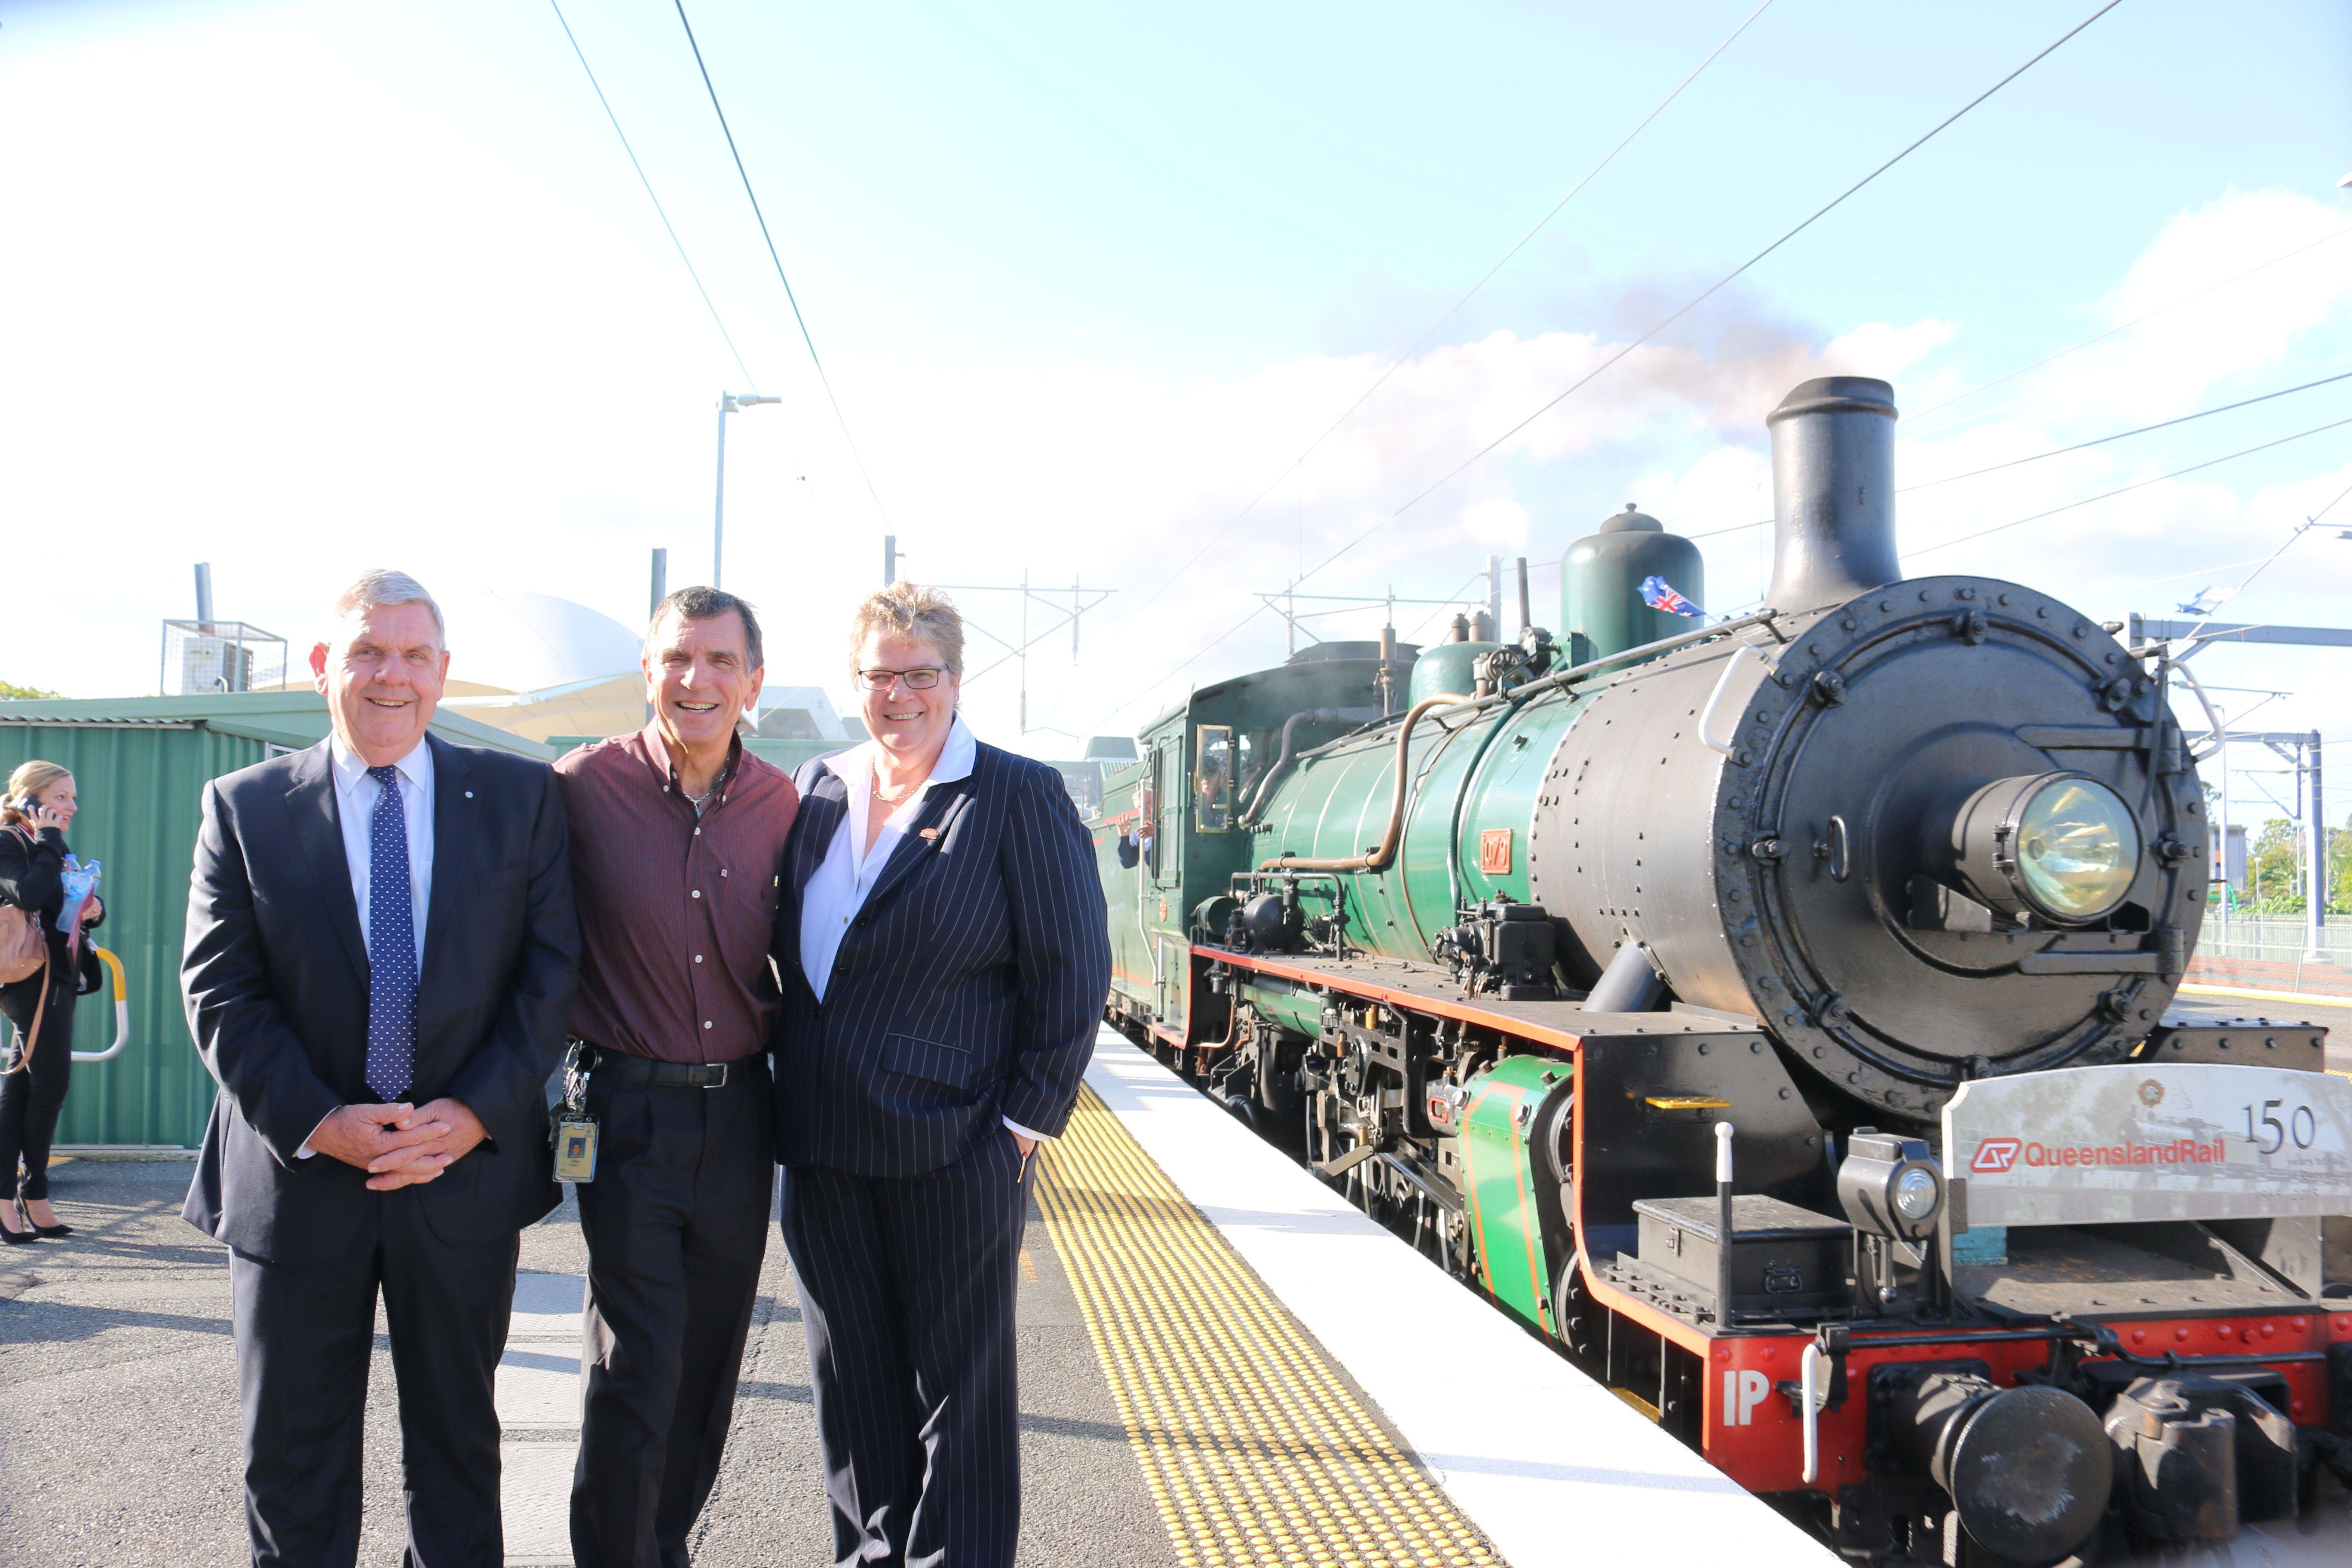 Celebrating 150 years of rail in Queensland at Caboolture